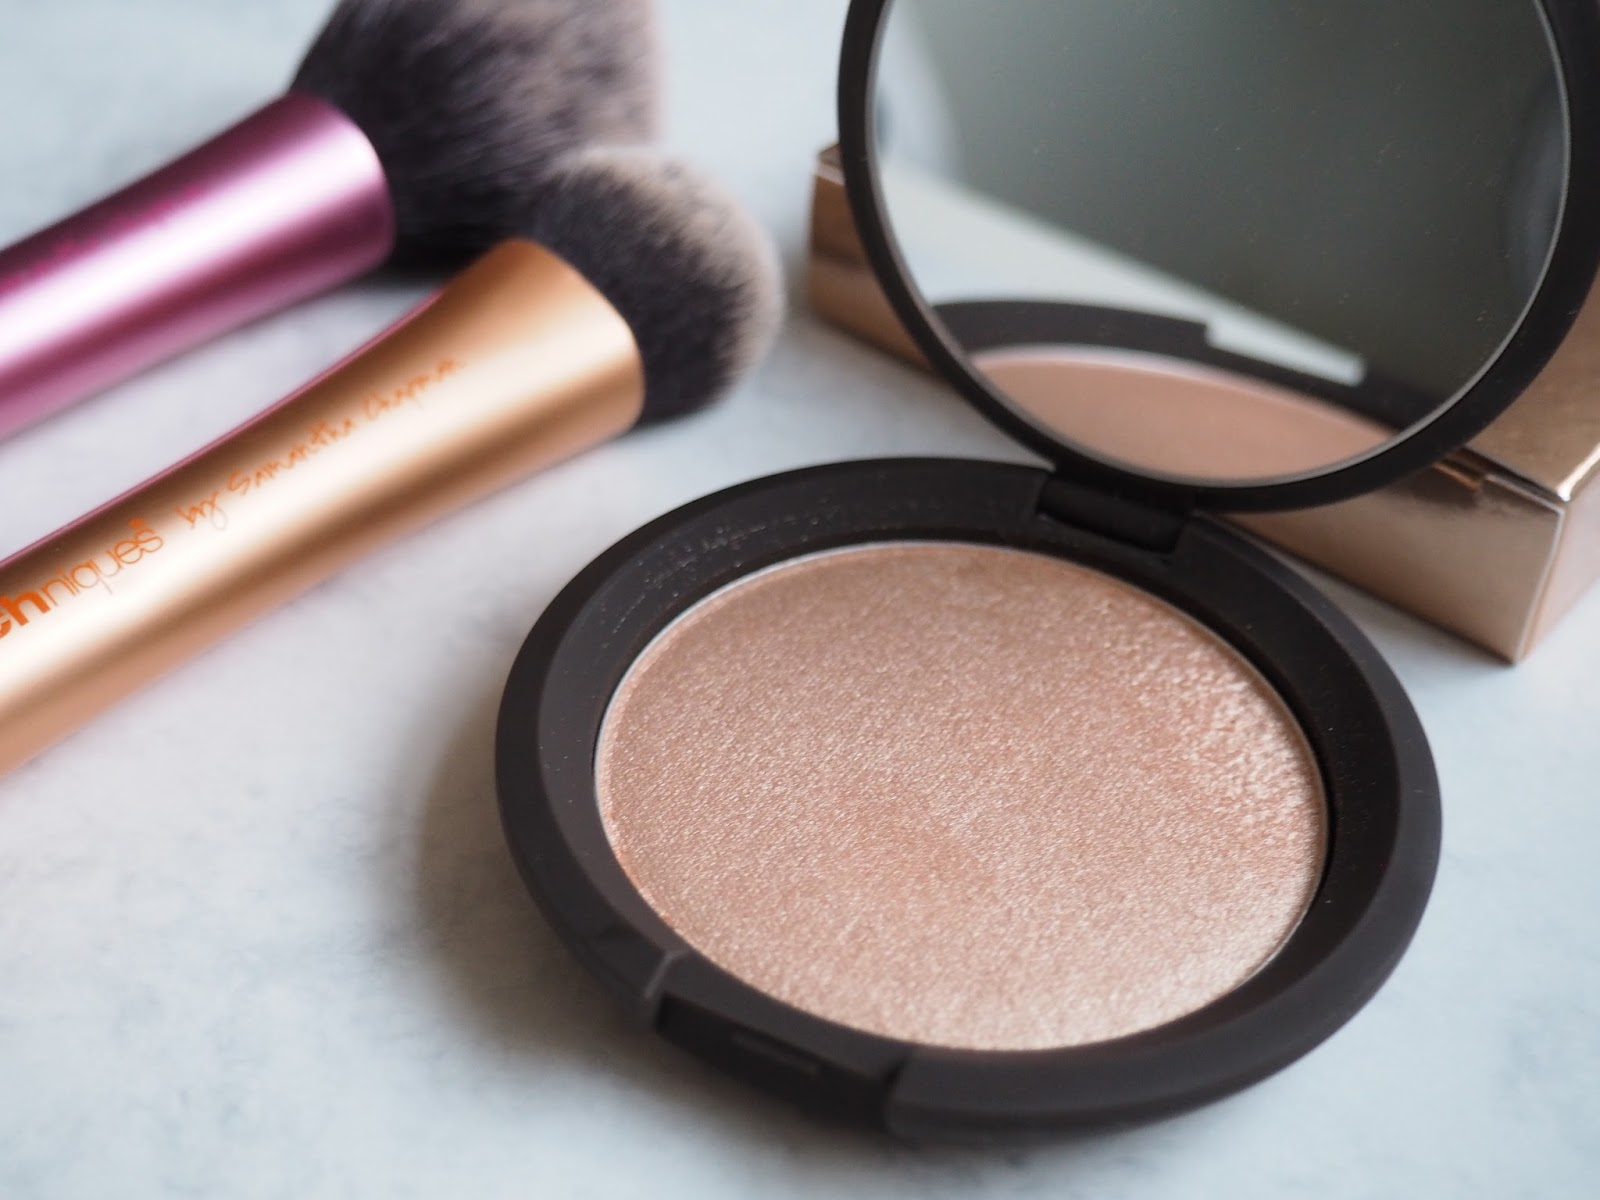 BECCA Jaclyn Hill Champagne pop shimmering skin perfector